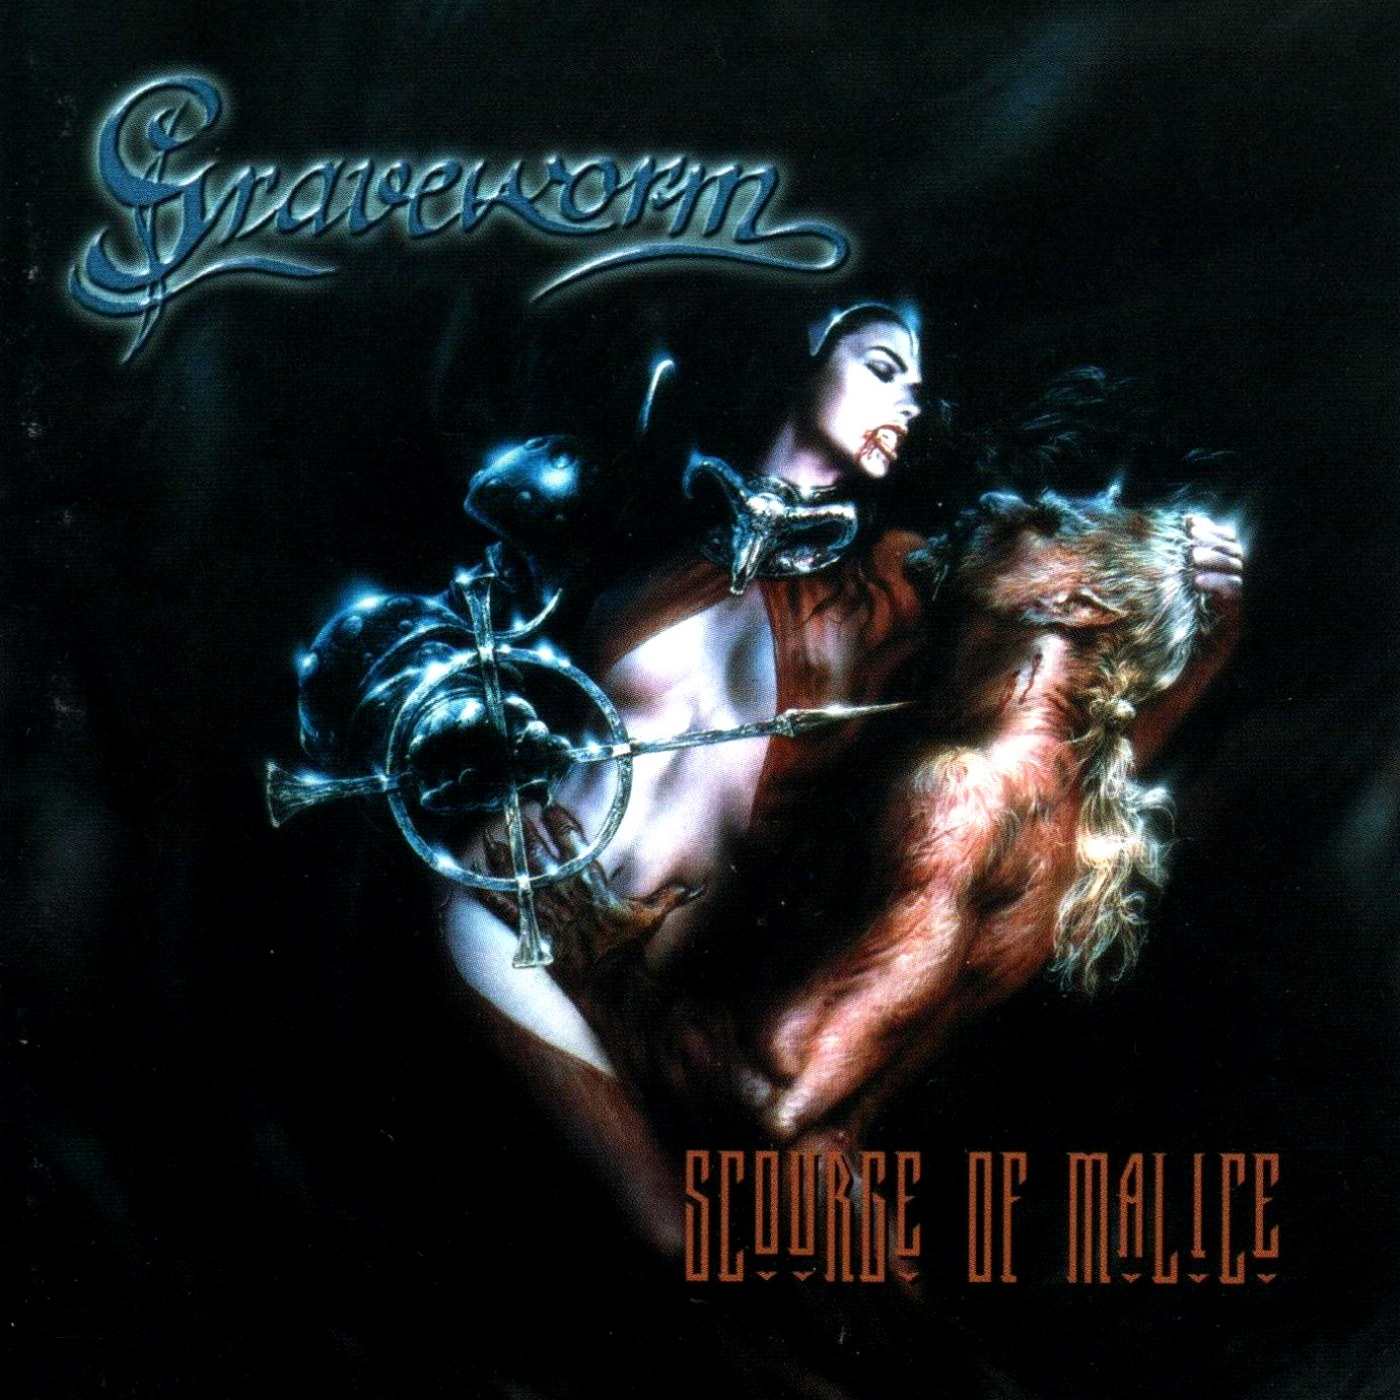 Review for Graveworm - Scourge of Malice